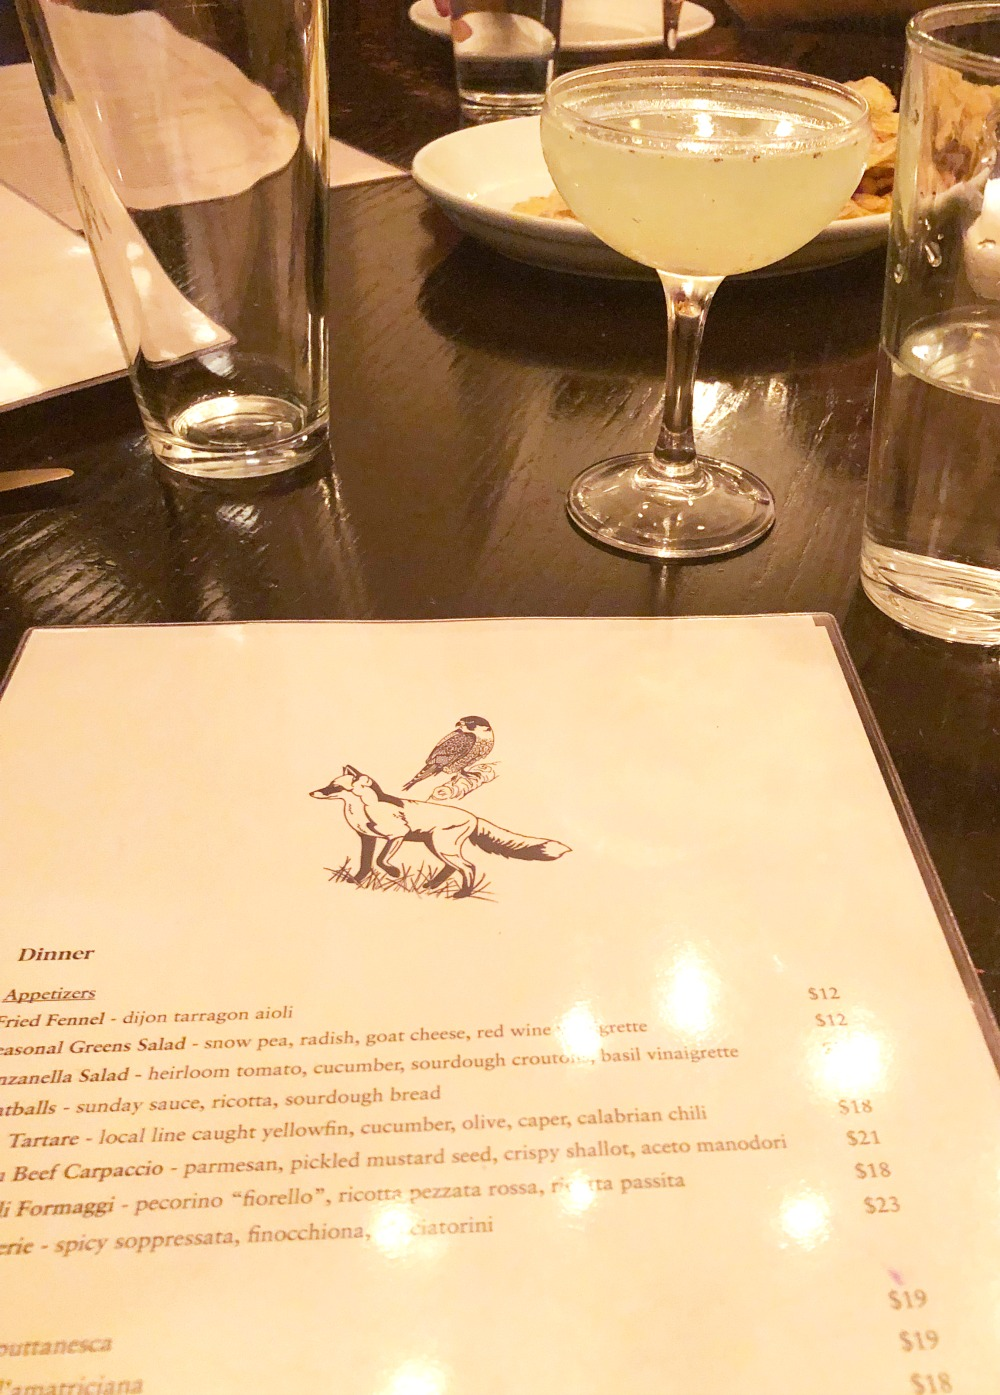 Photo Diary I South Orange New Jersey Fox and the Falcon Restaurant Martini #Travel #travelblogger